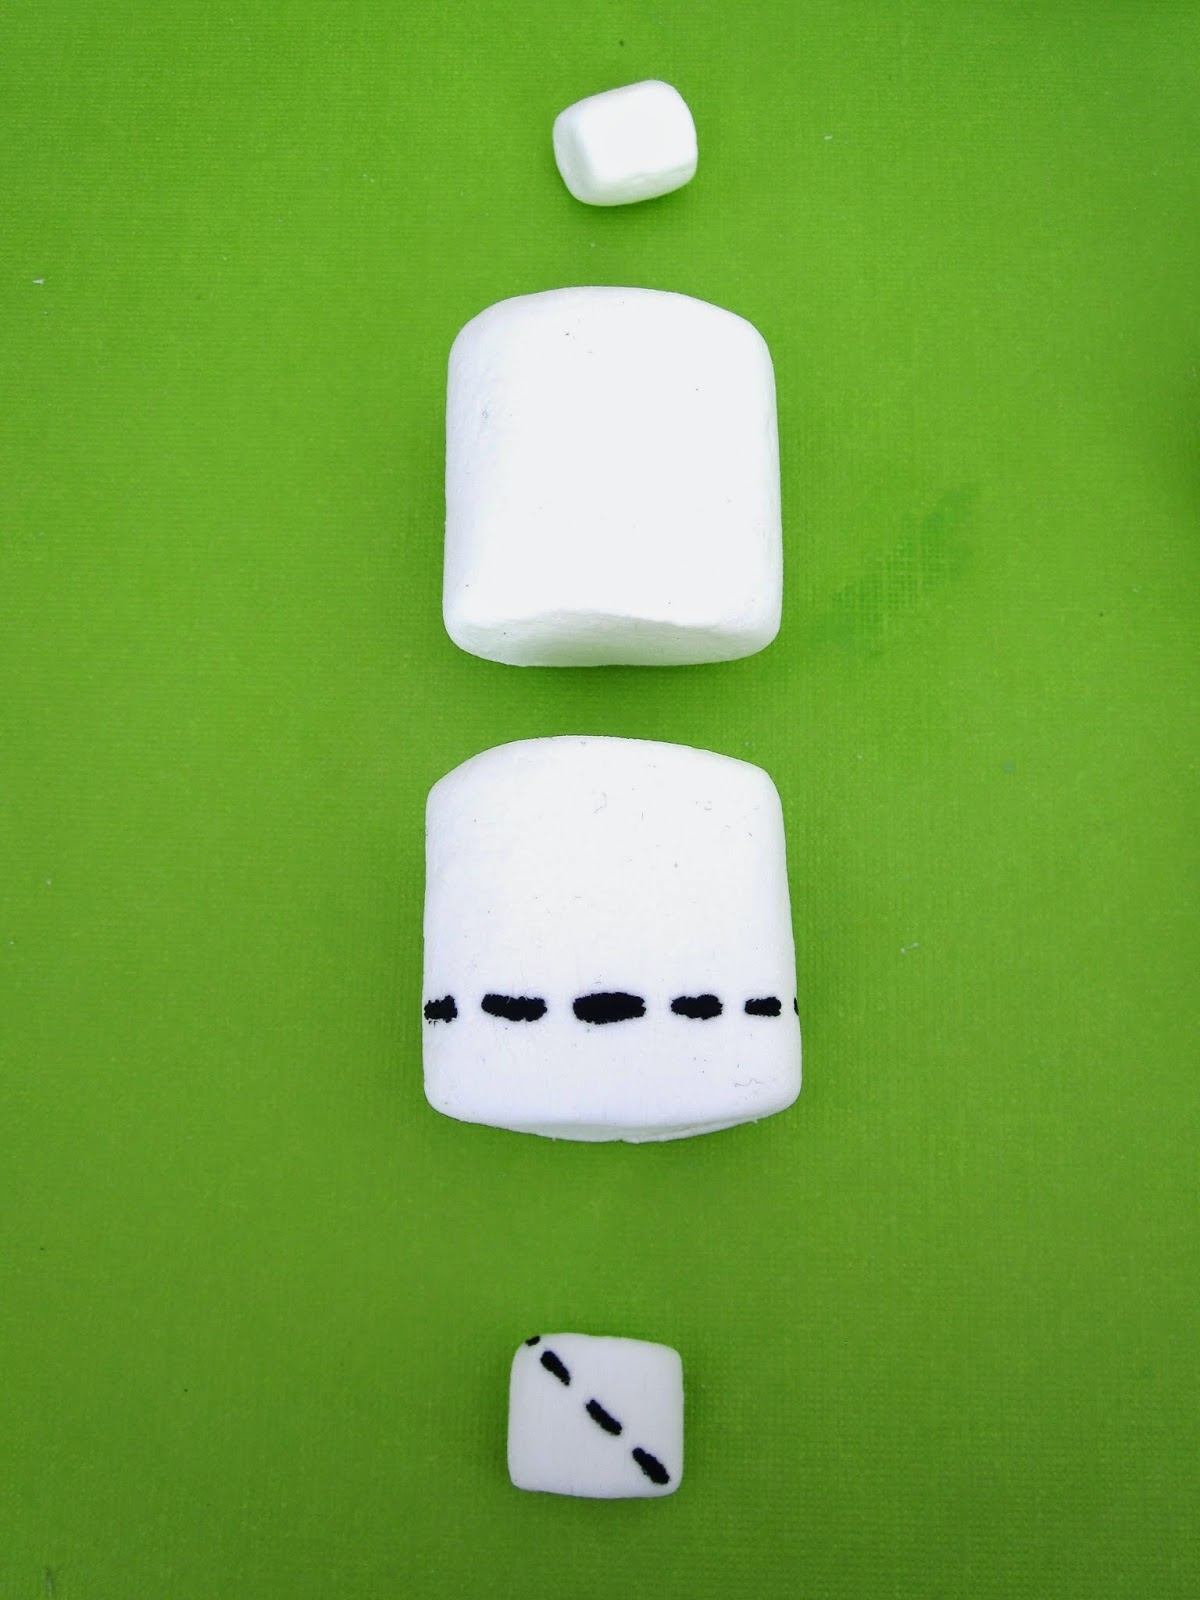 Roll The Cut Edges Of The Mini Marshmallow In Any Color Sugar Sprinkles  Cut Or Rip A Cross Cross In The Top Of The Second Mini Marshmallow To Create  A